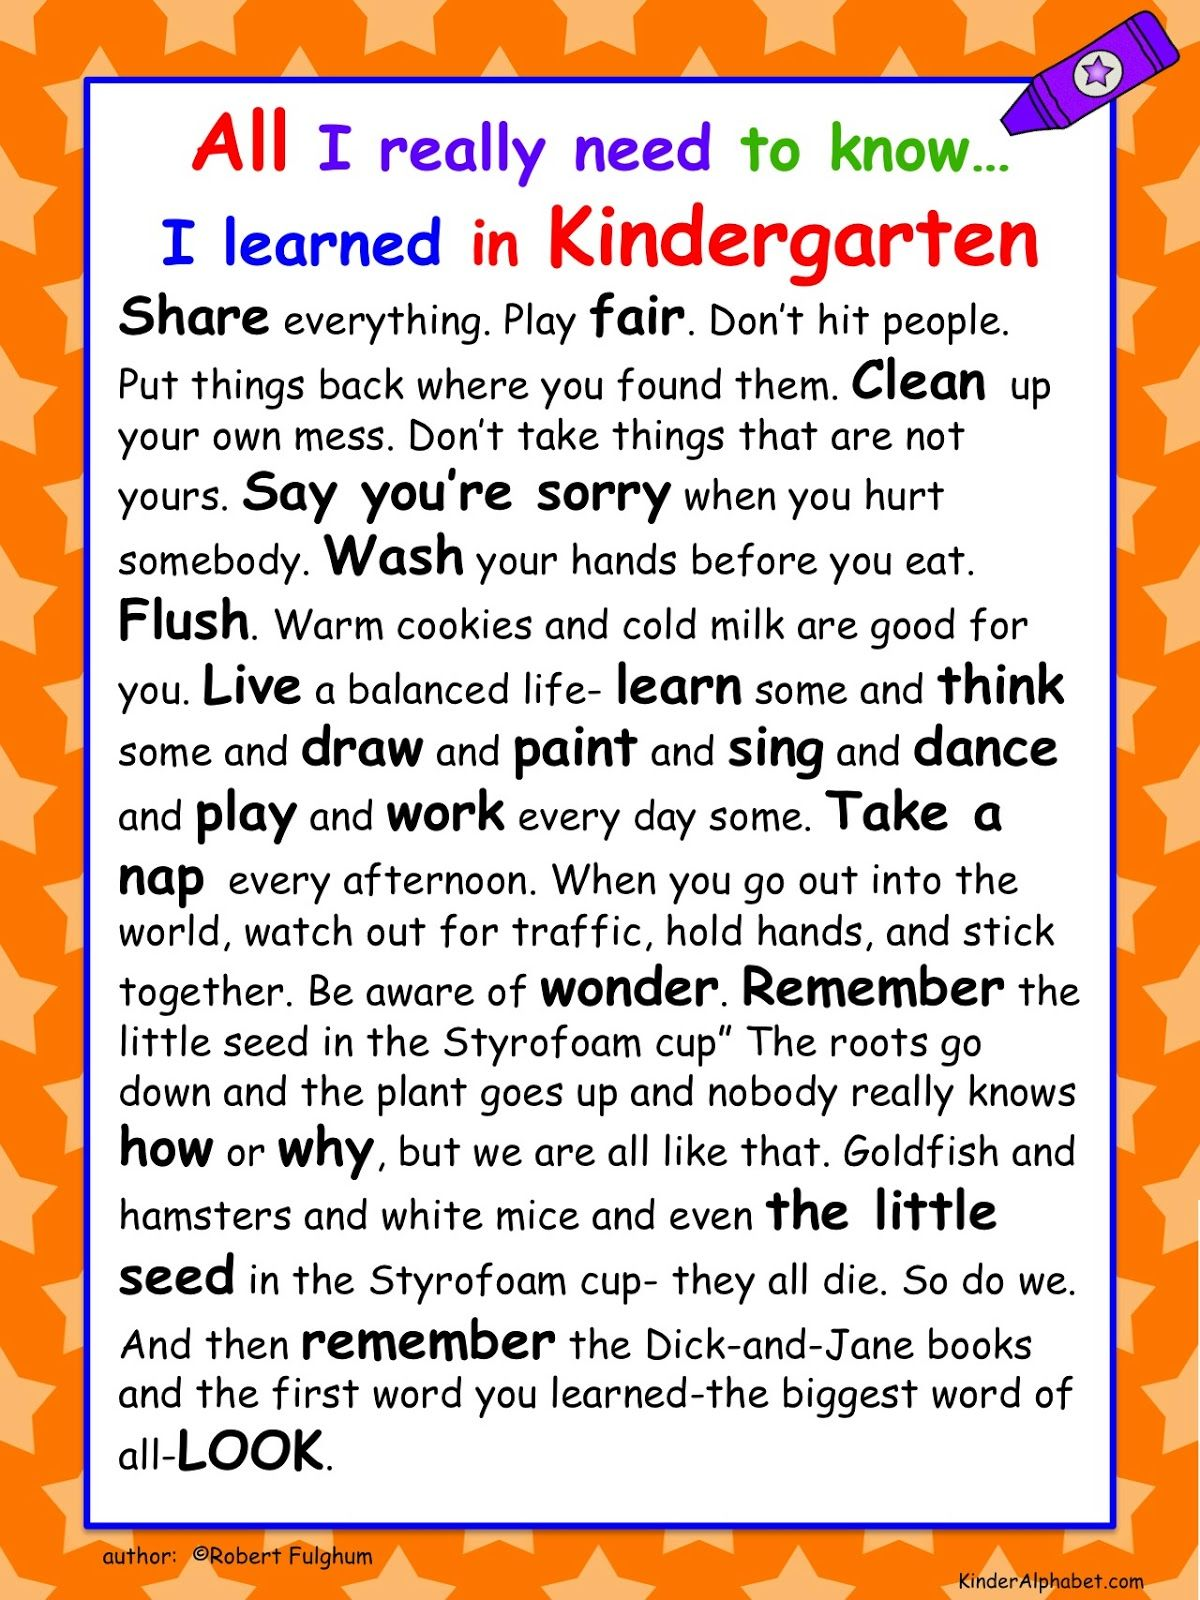 End Of The Year Activities Free All I Really Need To Know I Learned In Kindergarten Poster